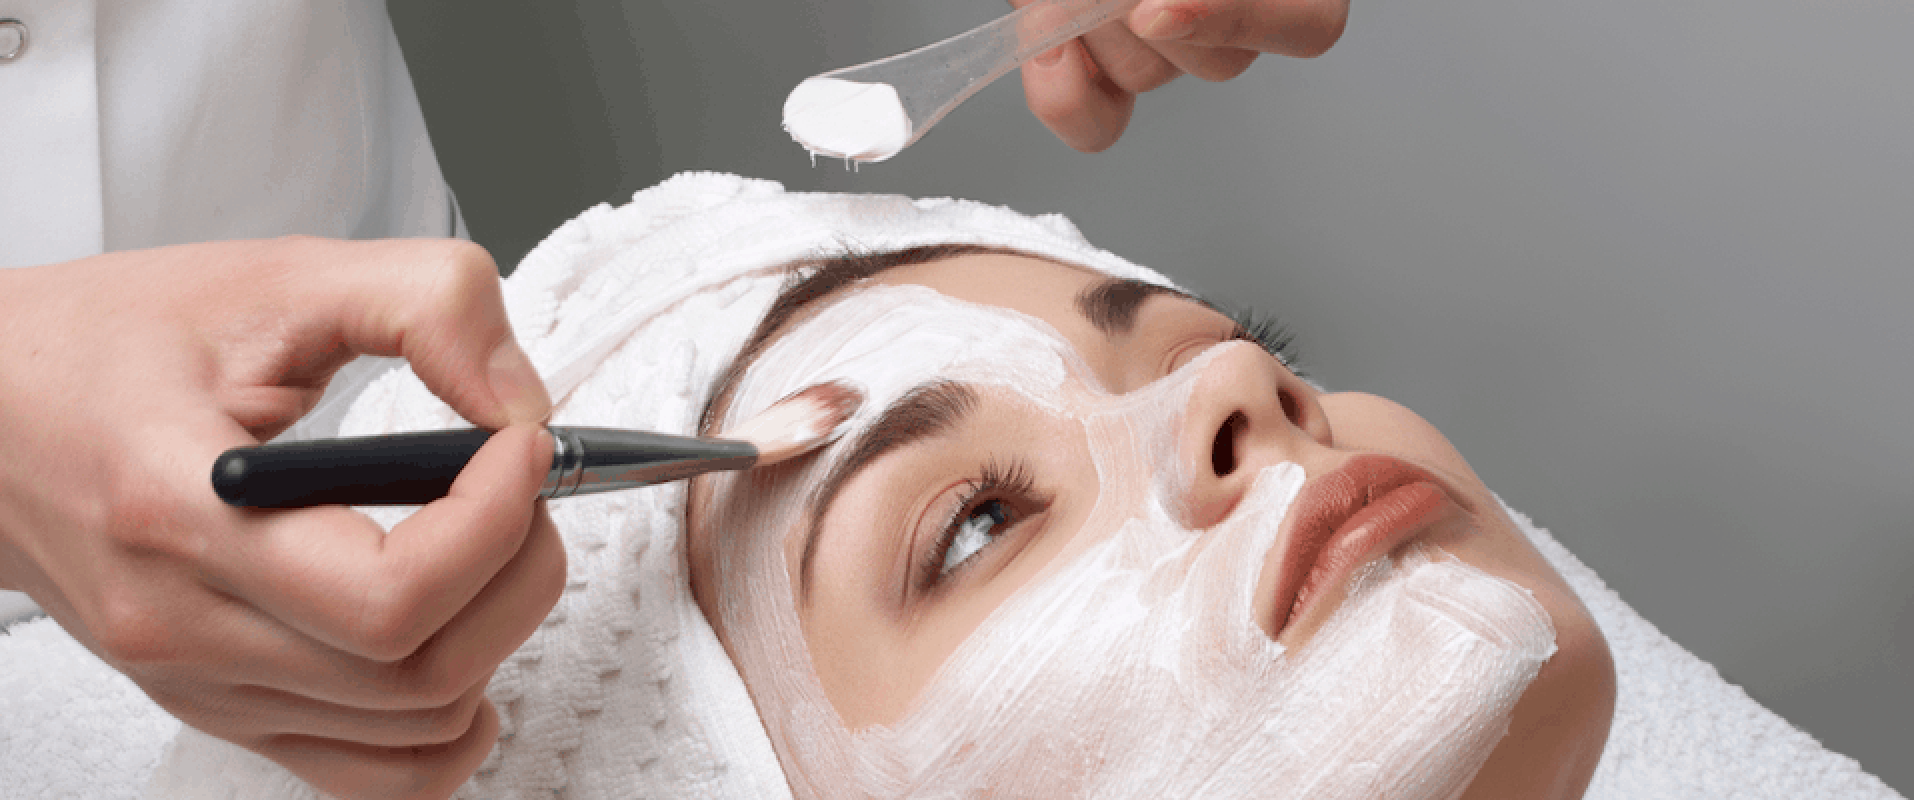 Picture of Esthetics Student Giving Facial at Esthetics Training